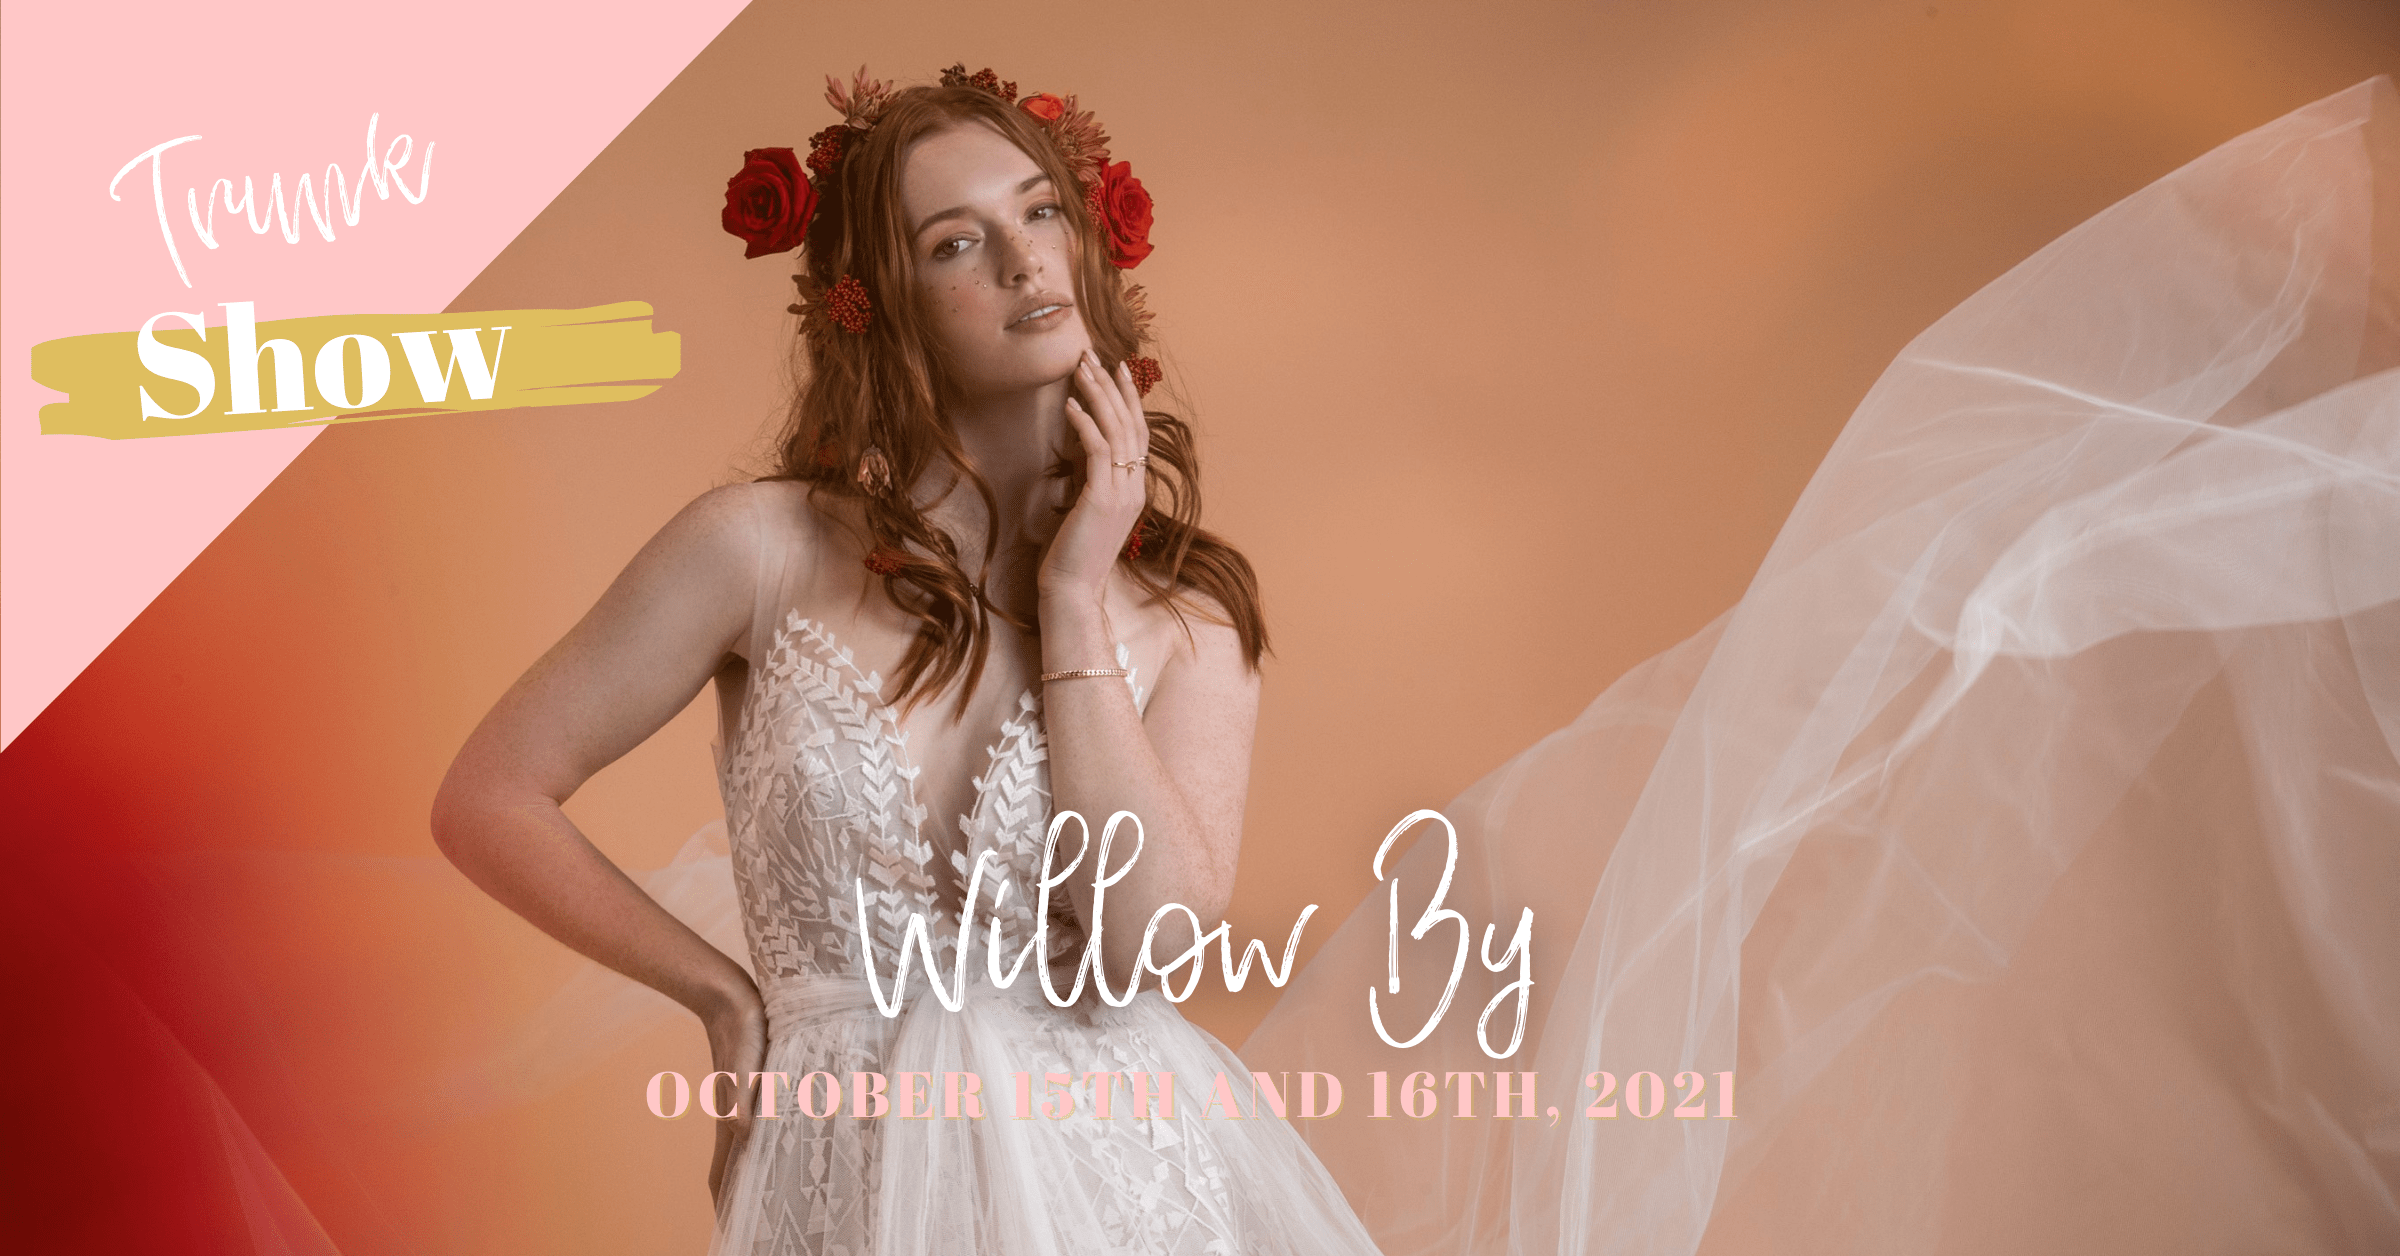 Willow By October 15th and 16th, 2021 (By Watters)